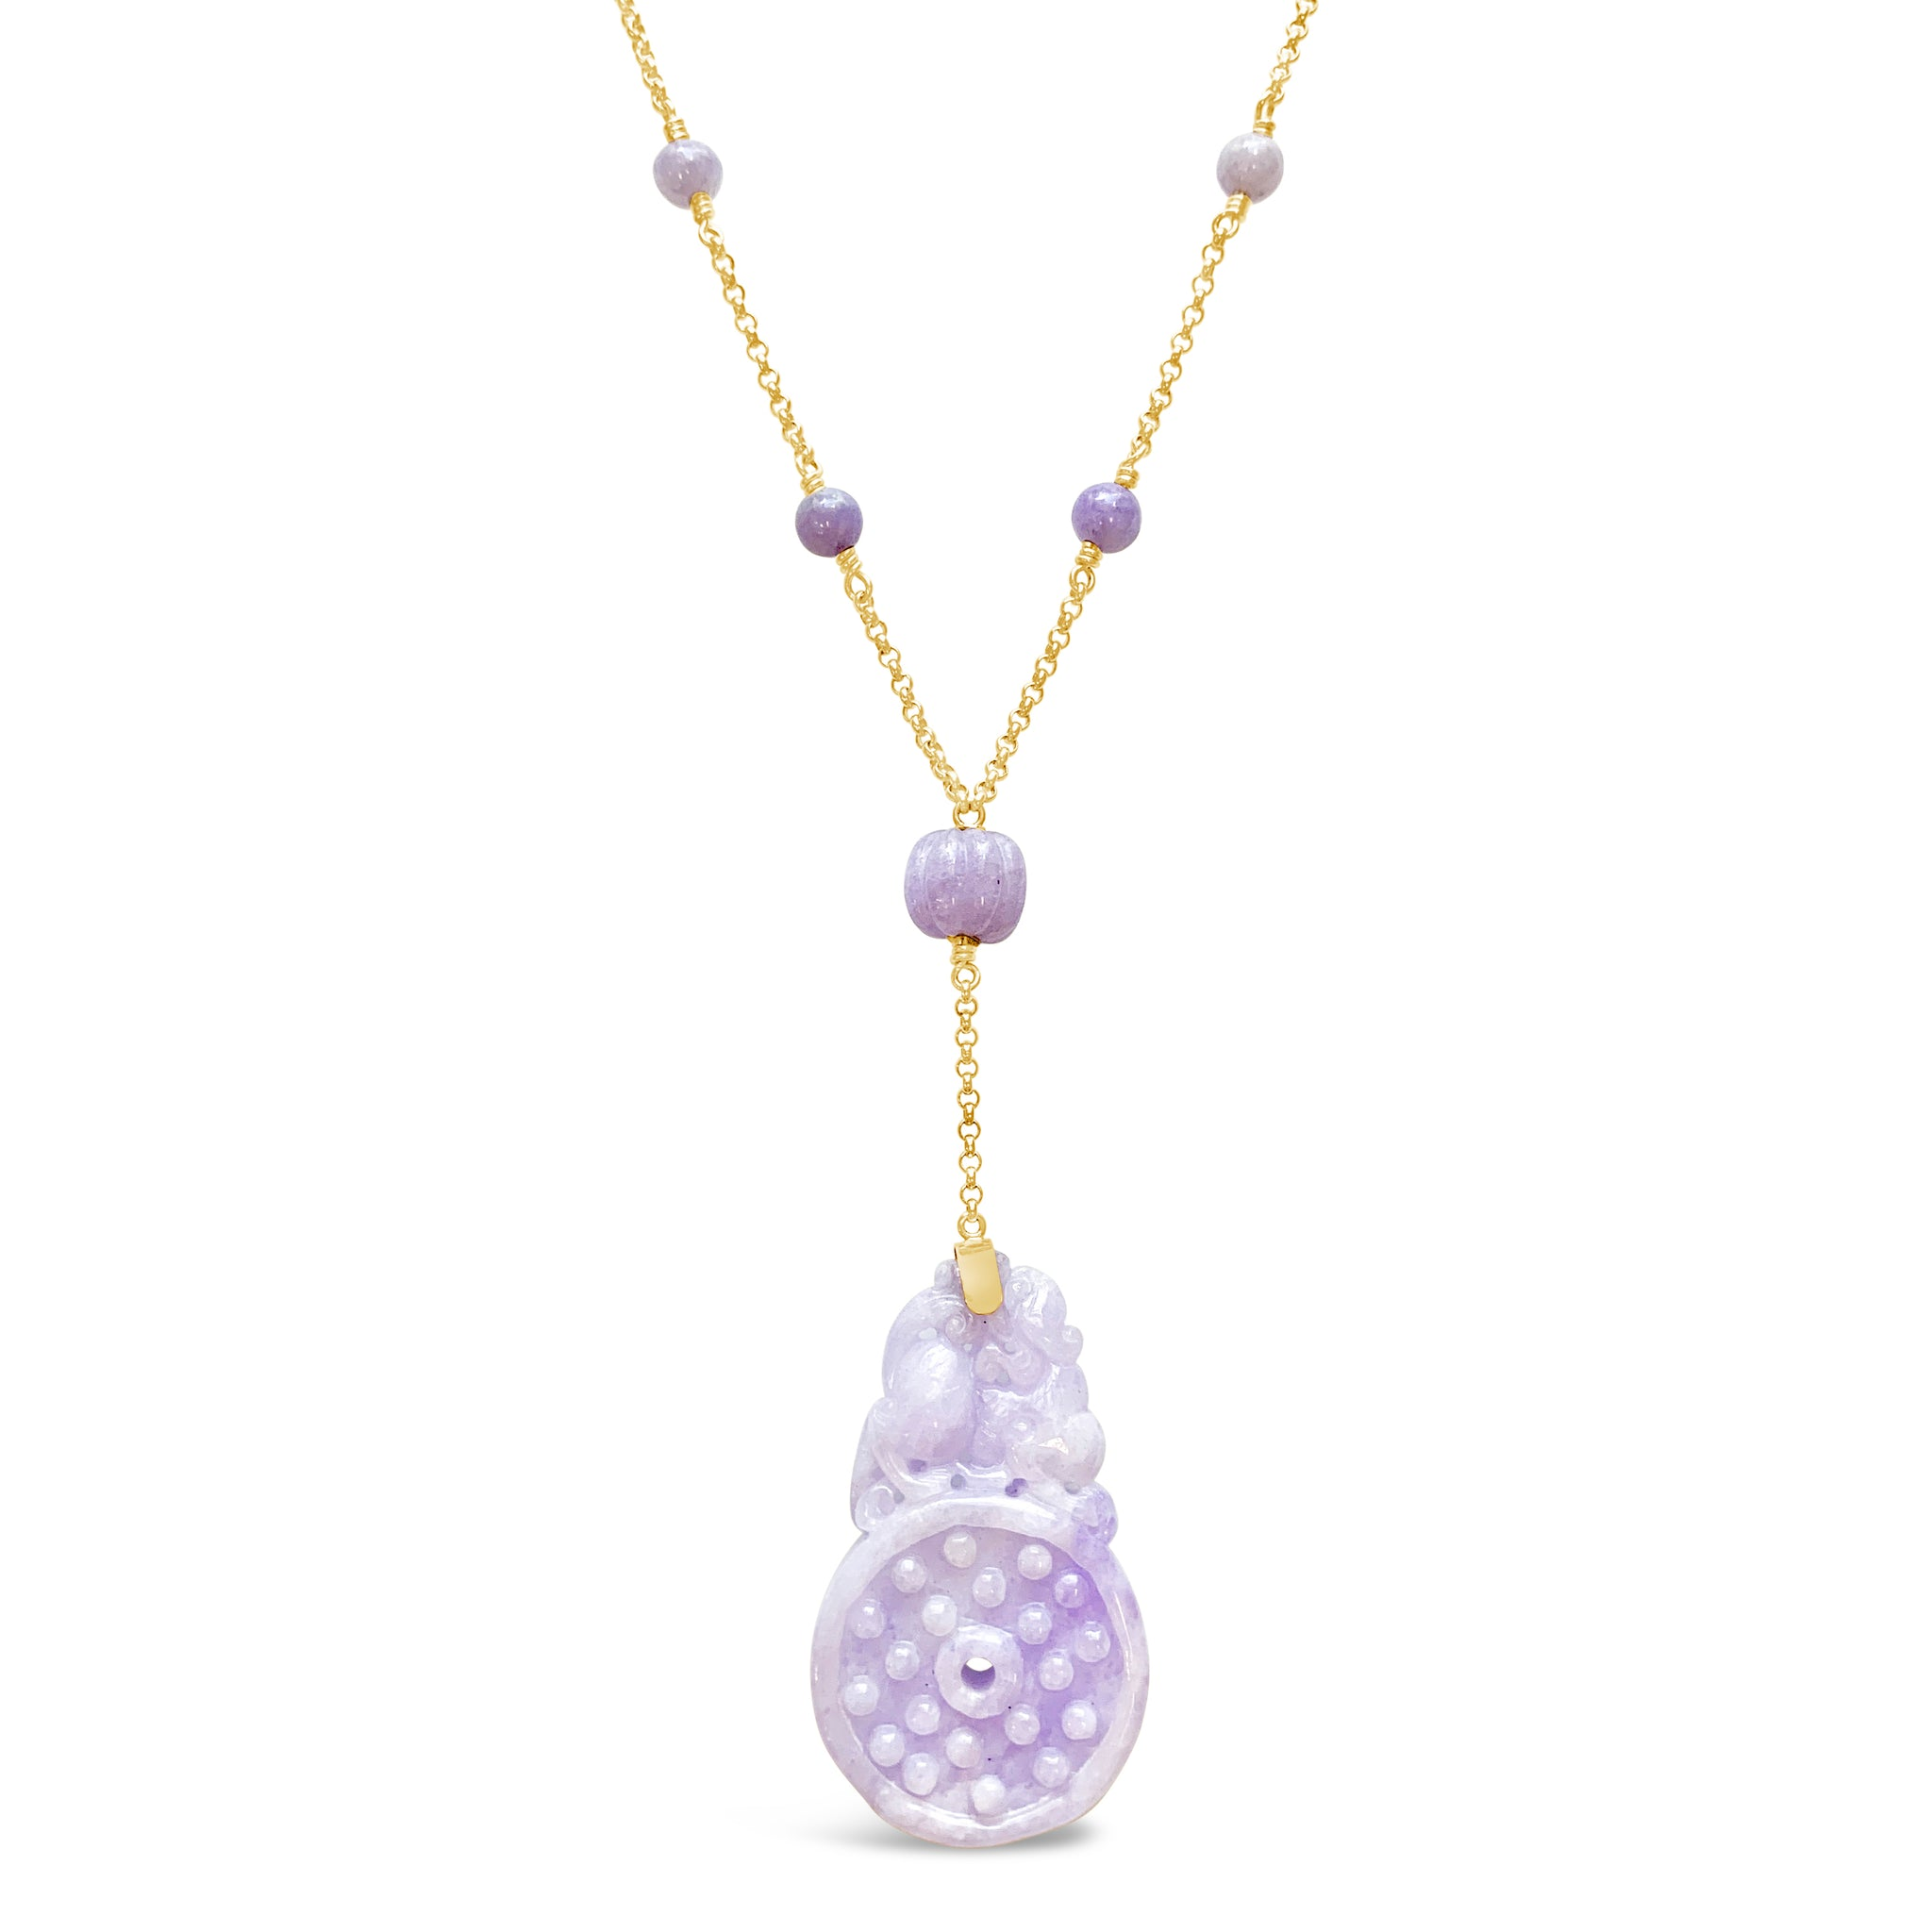 Lavender Jadeite Necklace